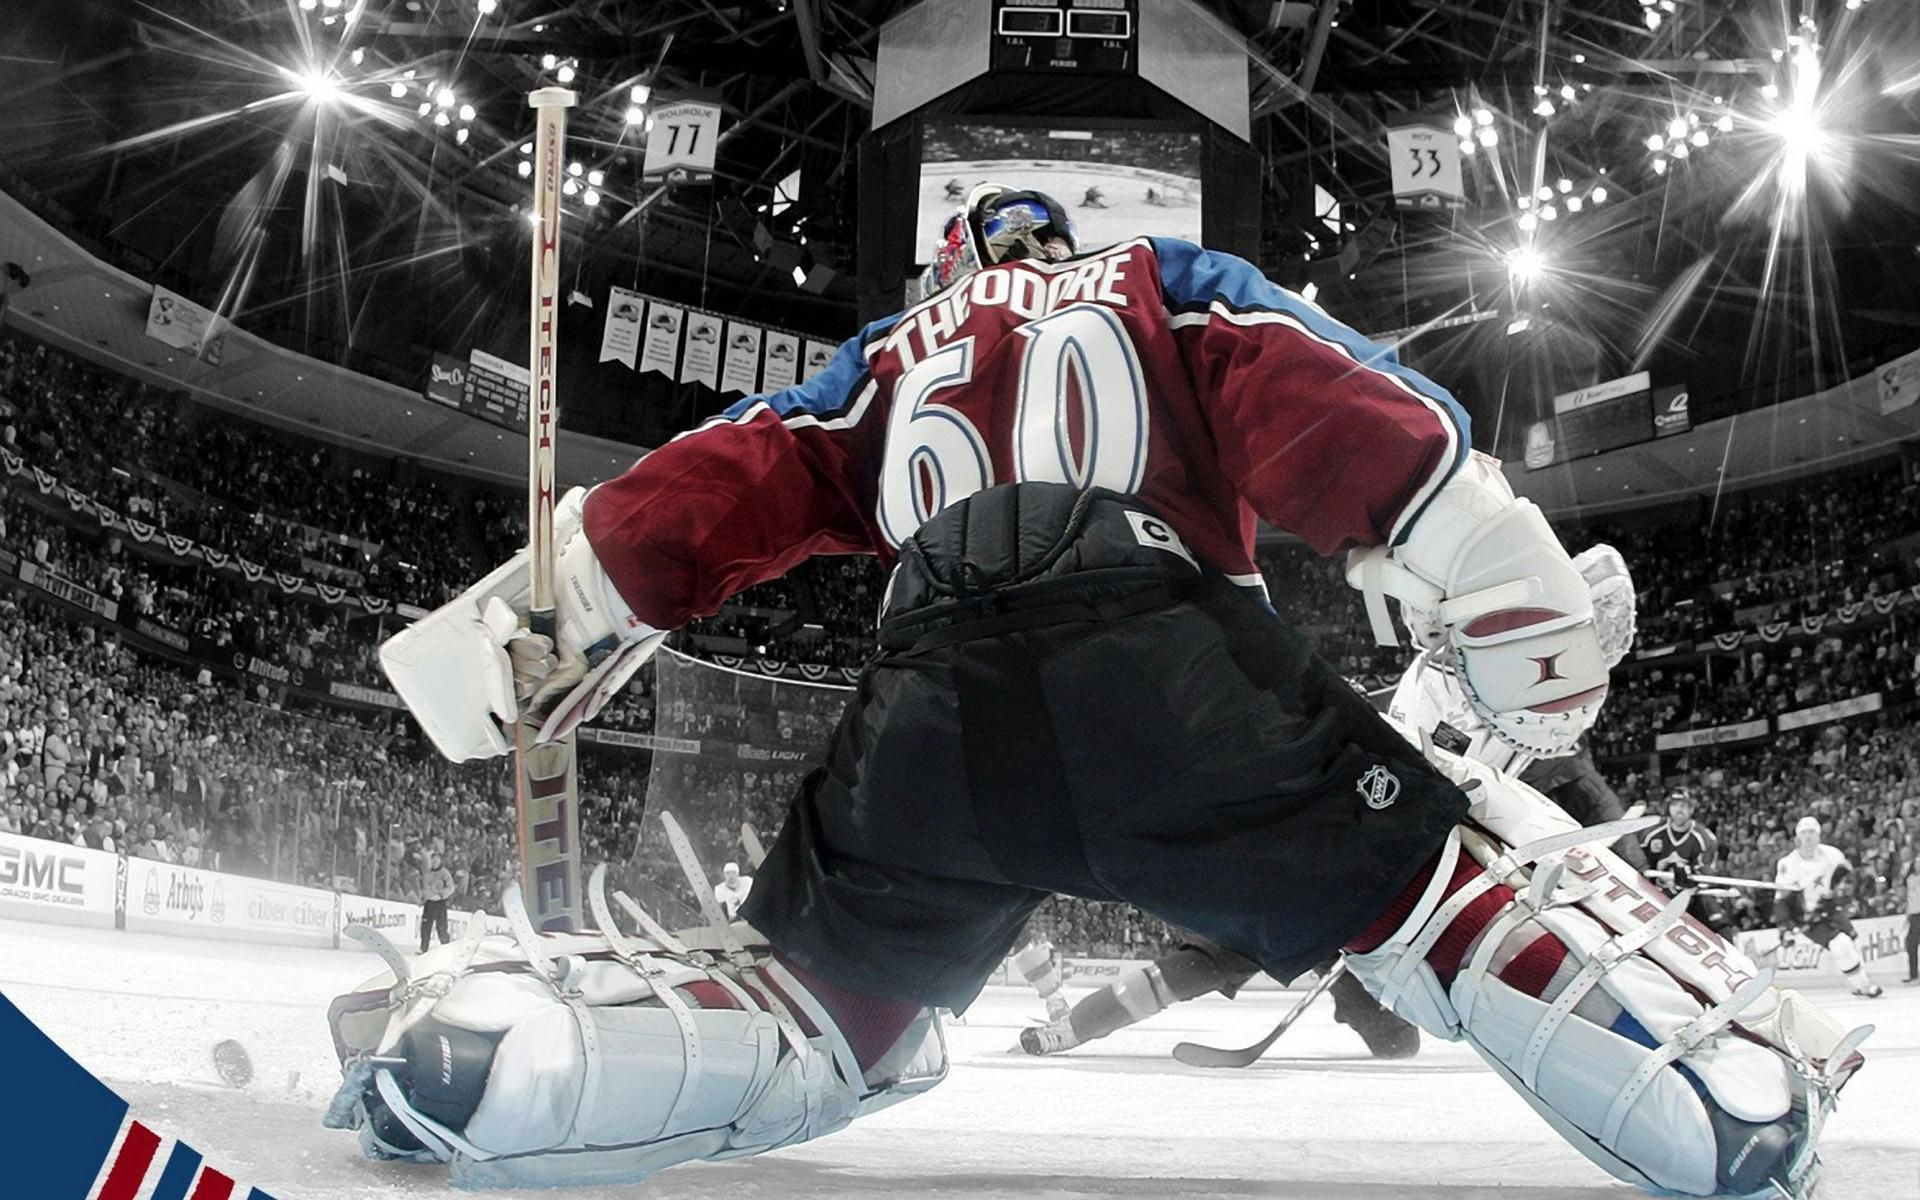 Wallpapers Hockey Sport Photo 228280 Hockey Pictures Nhl Wallpaper Colorado Avalanche